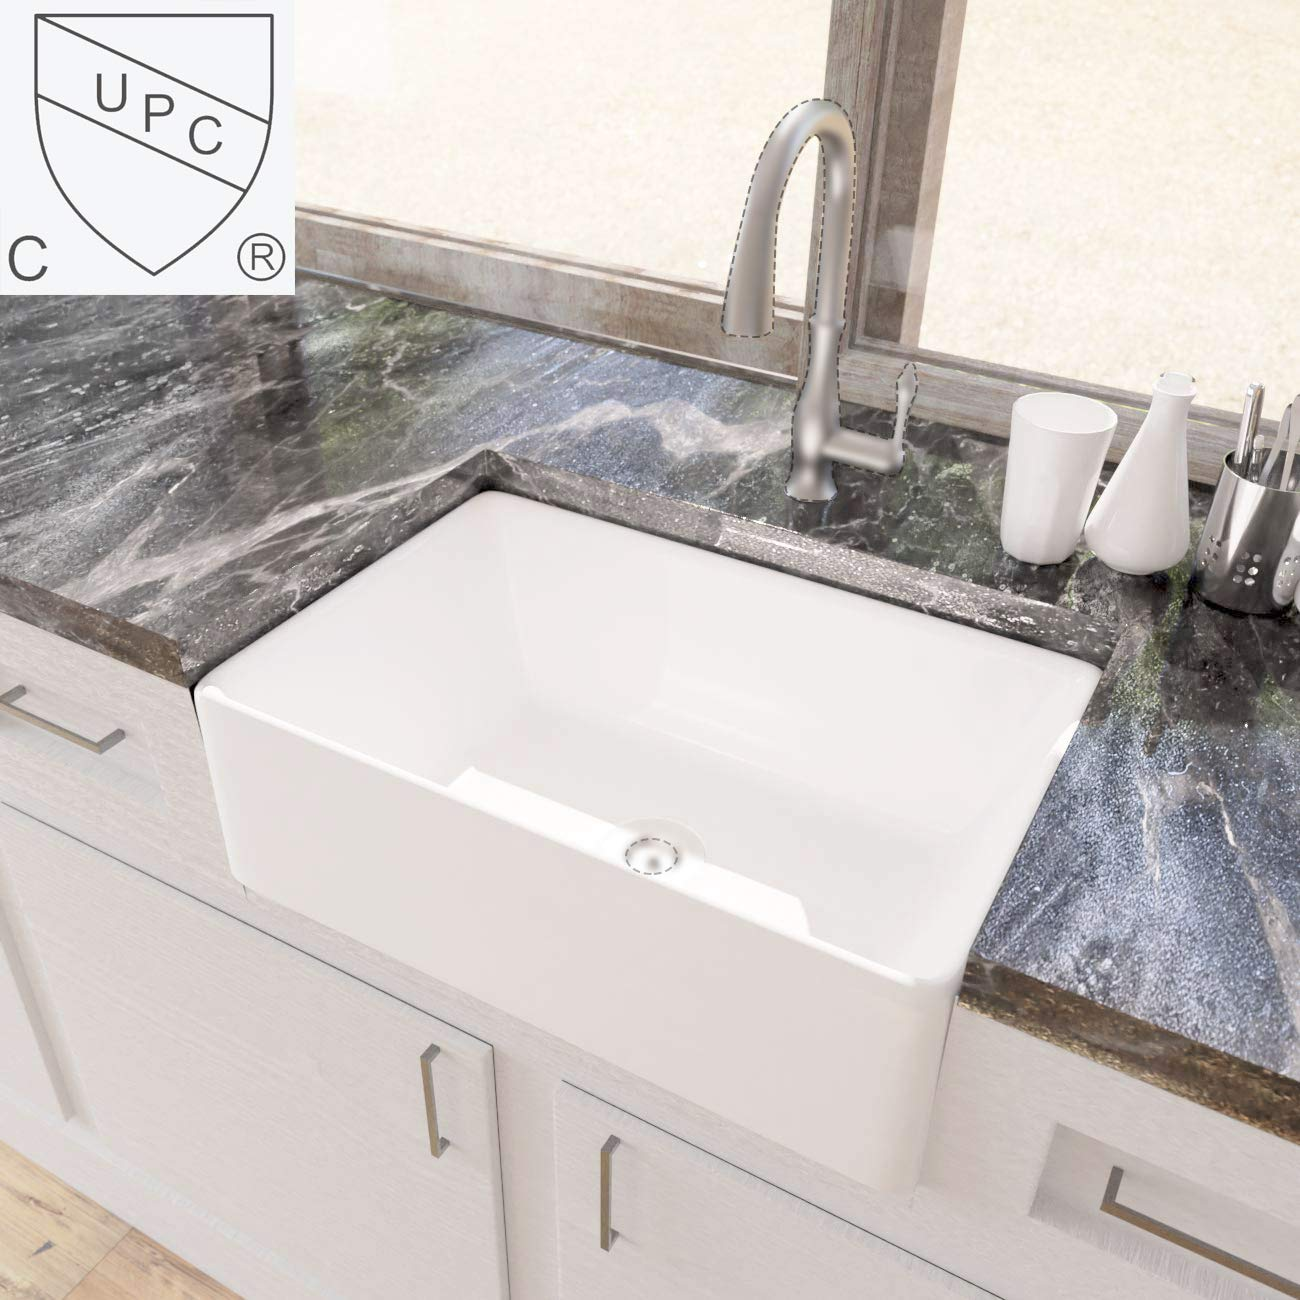 KES cUPC Fireclay Sink Farmhouse Kitchen Sink (30 Inch Porcelain Undermount Rectangular White) BVS117 by Kes (Image #1)